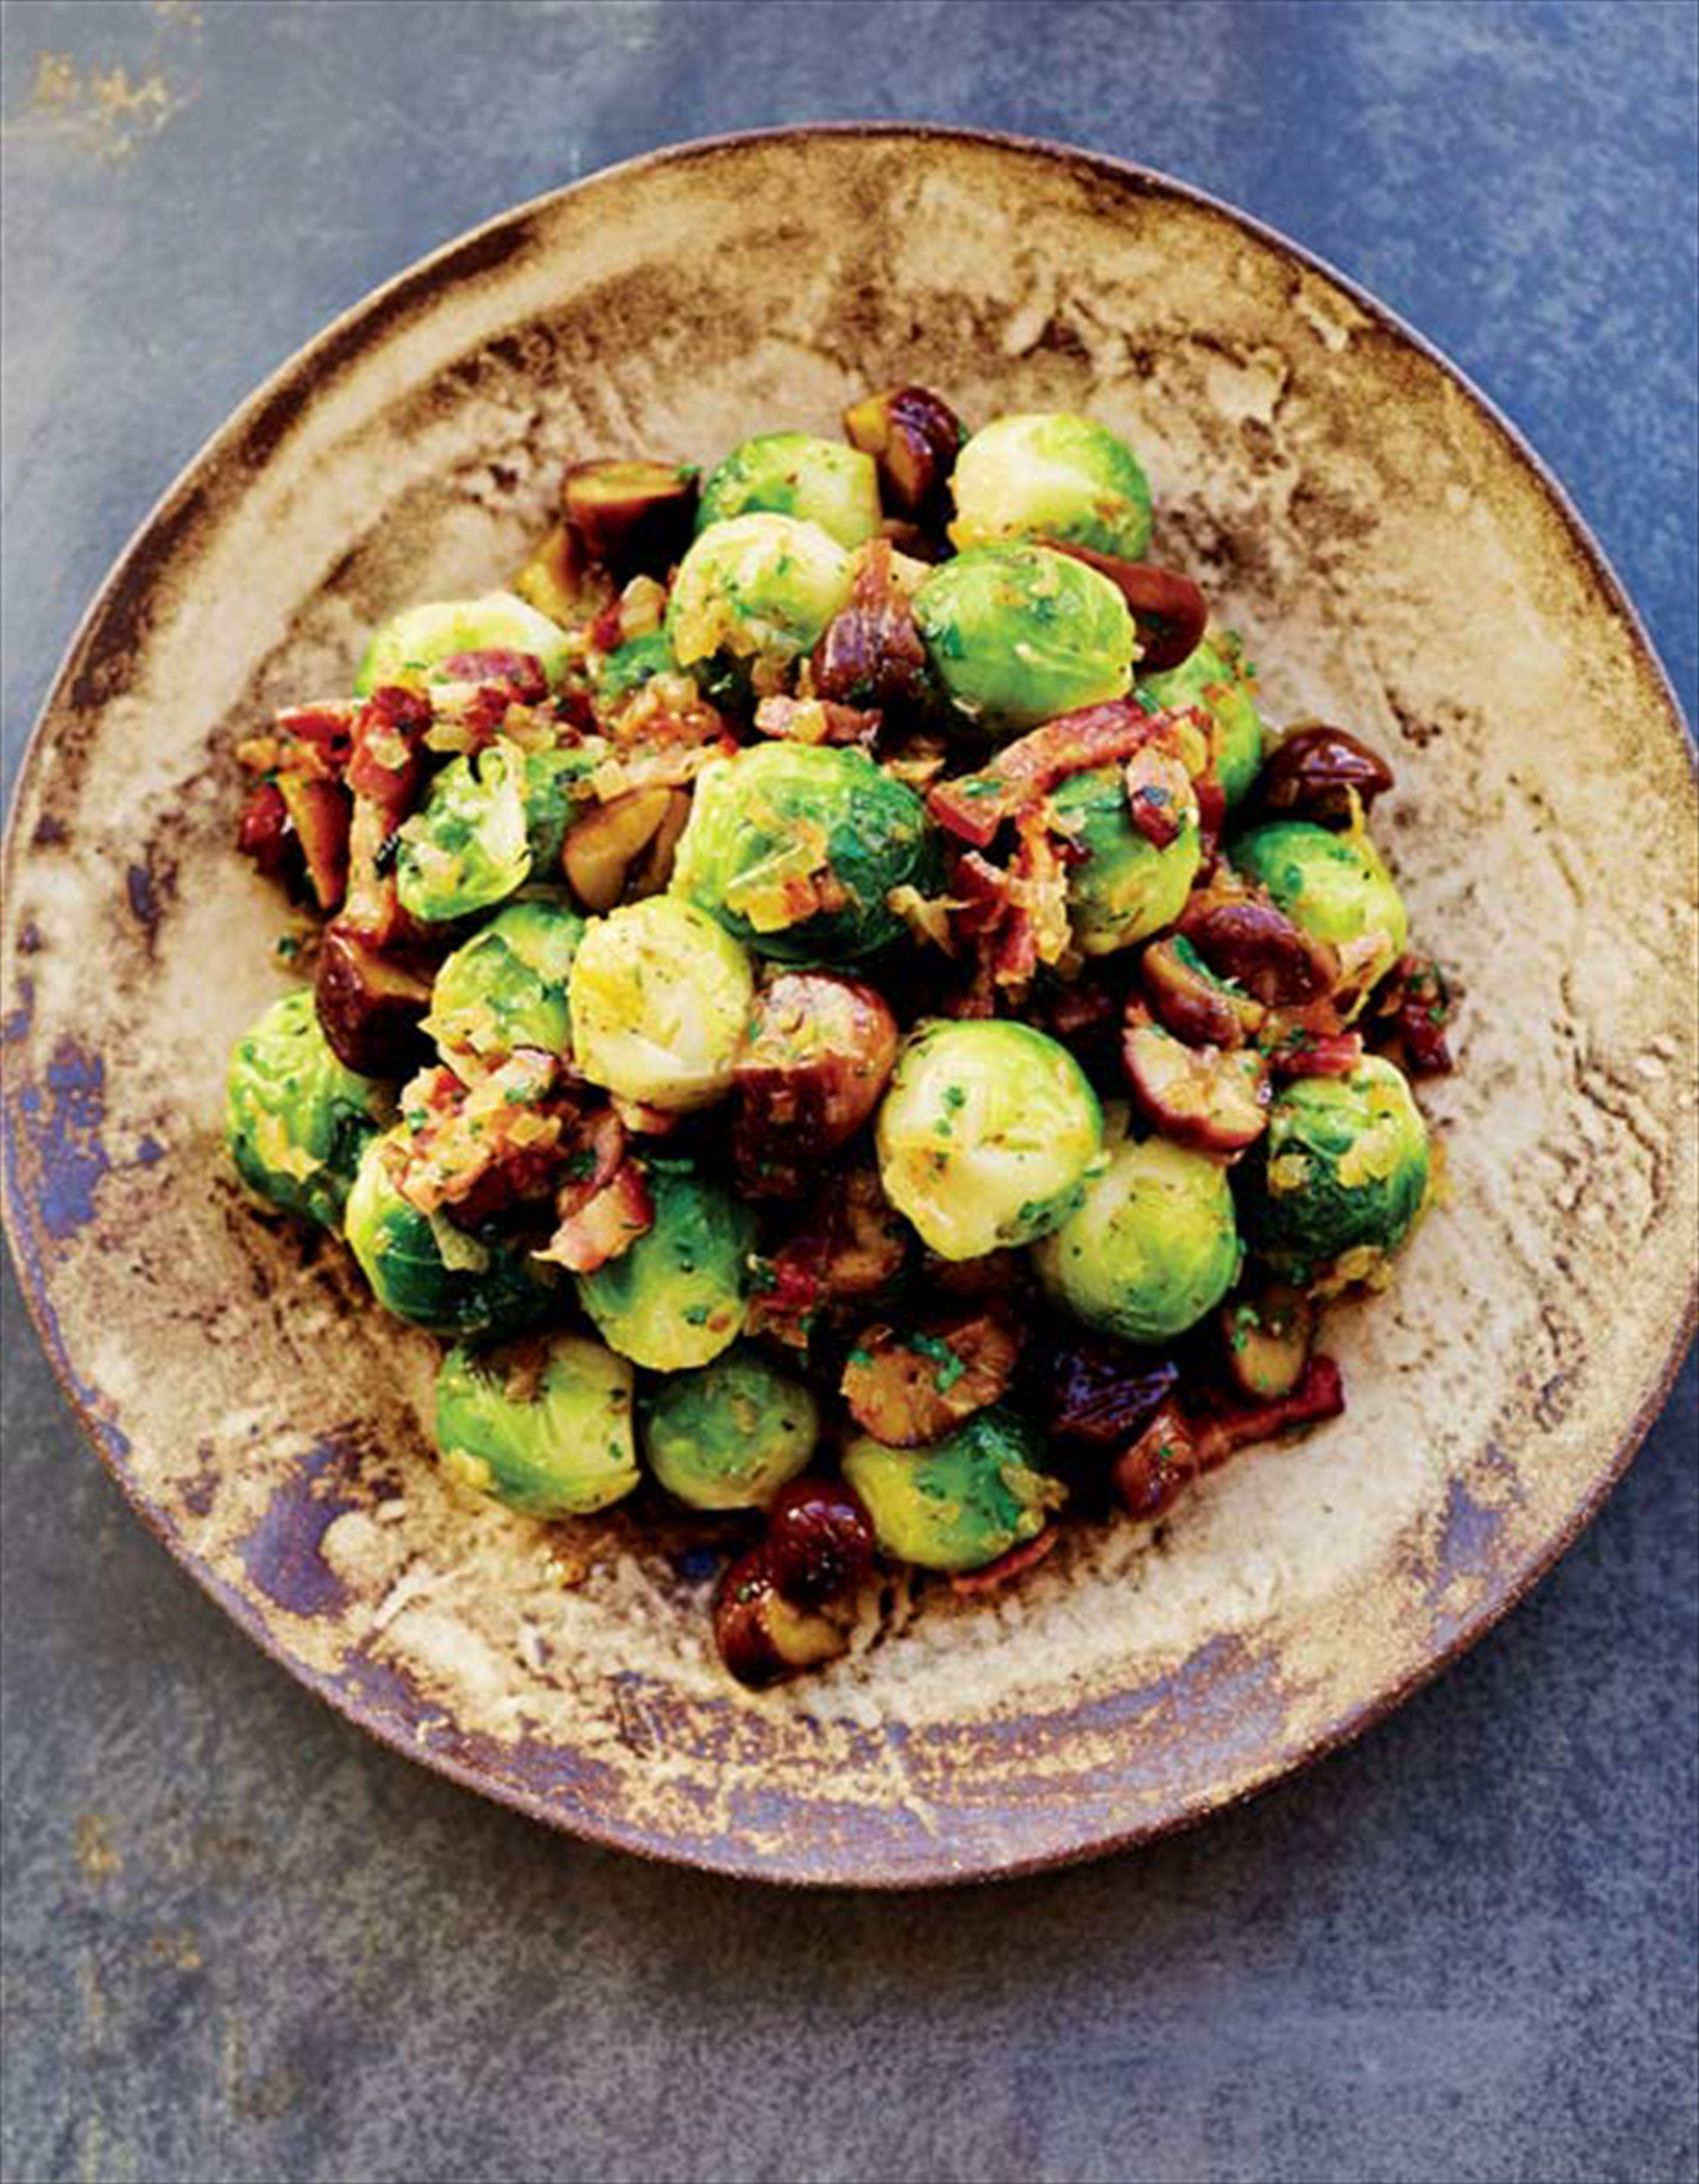 Brussels sprouts with chestnuts and bacon